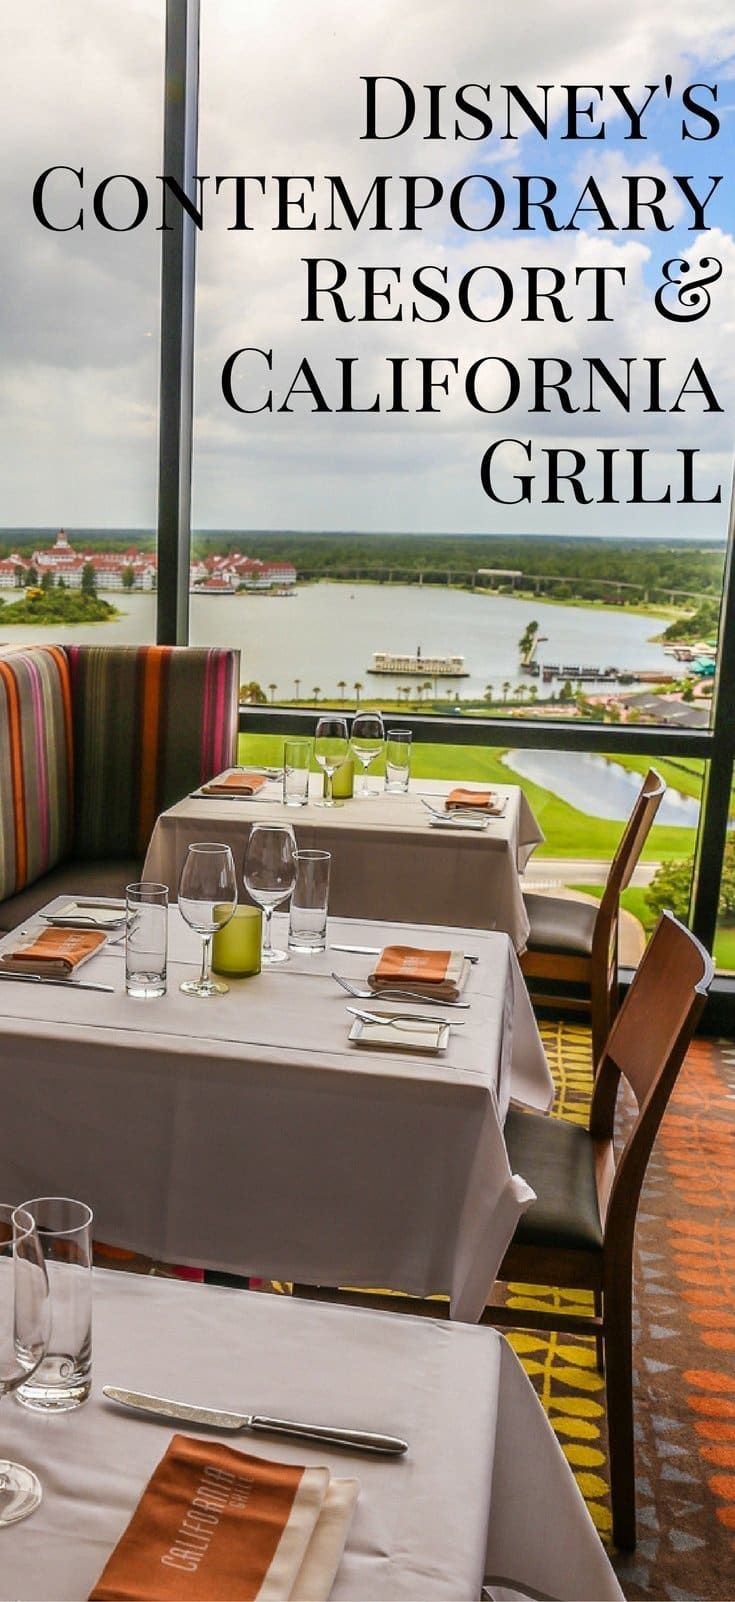 Are Contemporary Resort and California Grill the best Disney World has to offer? We show you our answer.